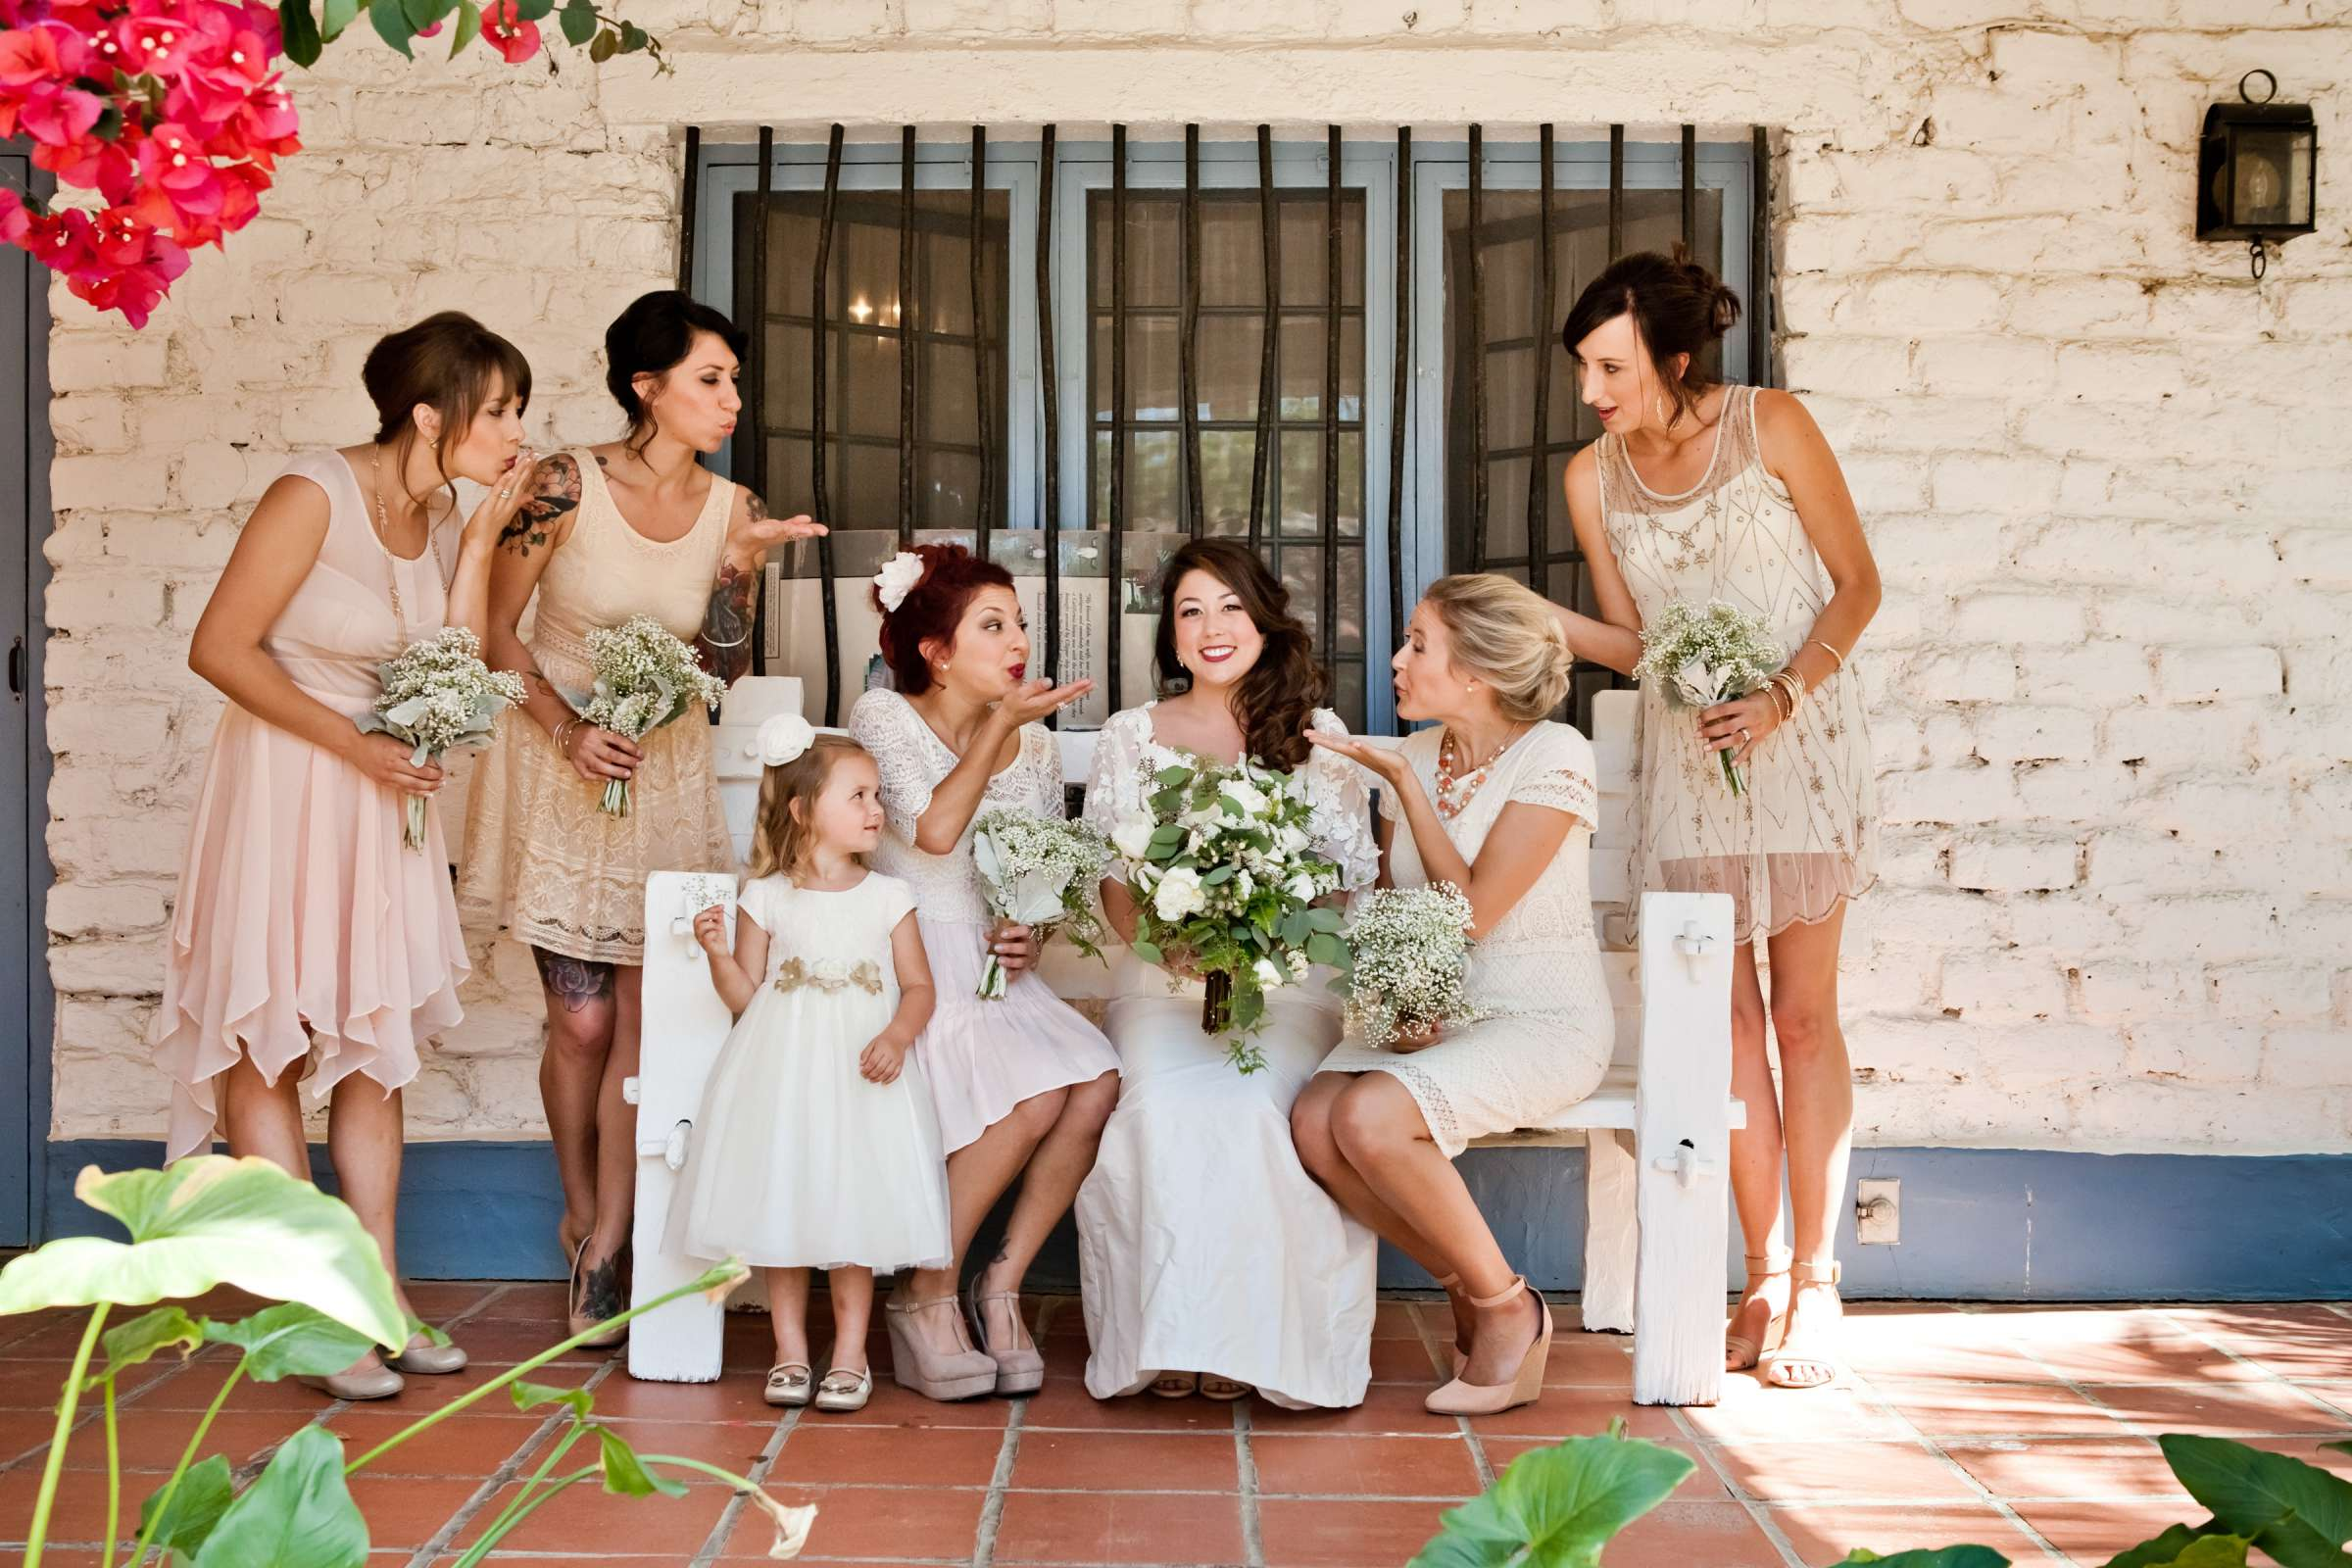 Leo Carrillo Ranch Wedding coordinated by Weddings by Lisa Nicole, Bethany and Aaron Wedding Photo #10 by True Photography